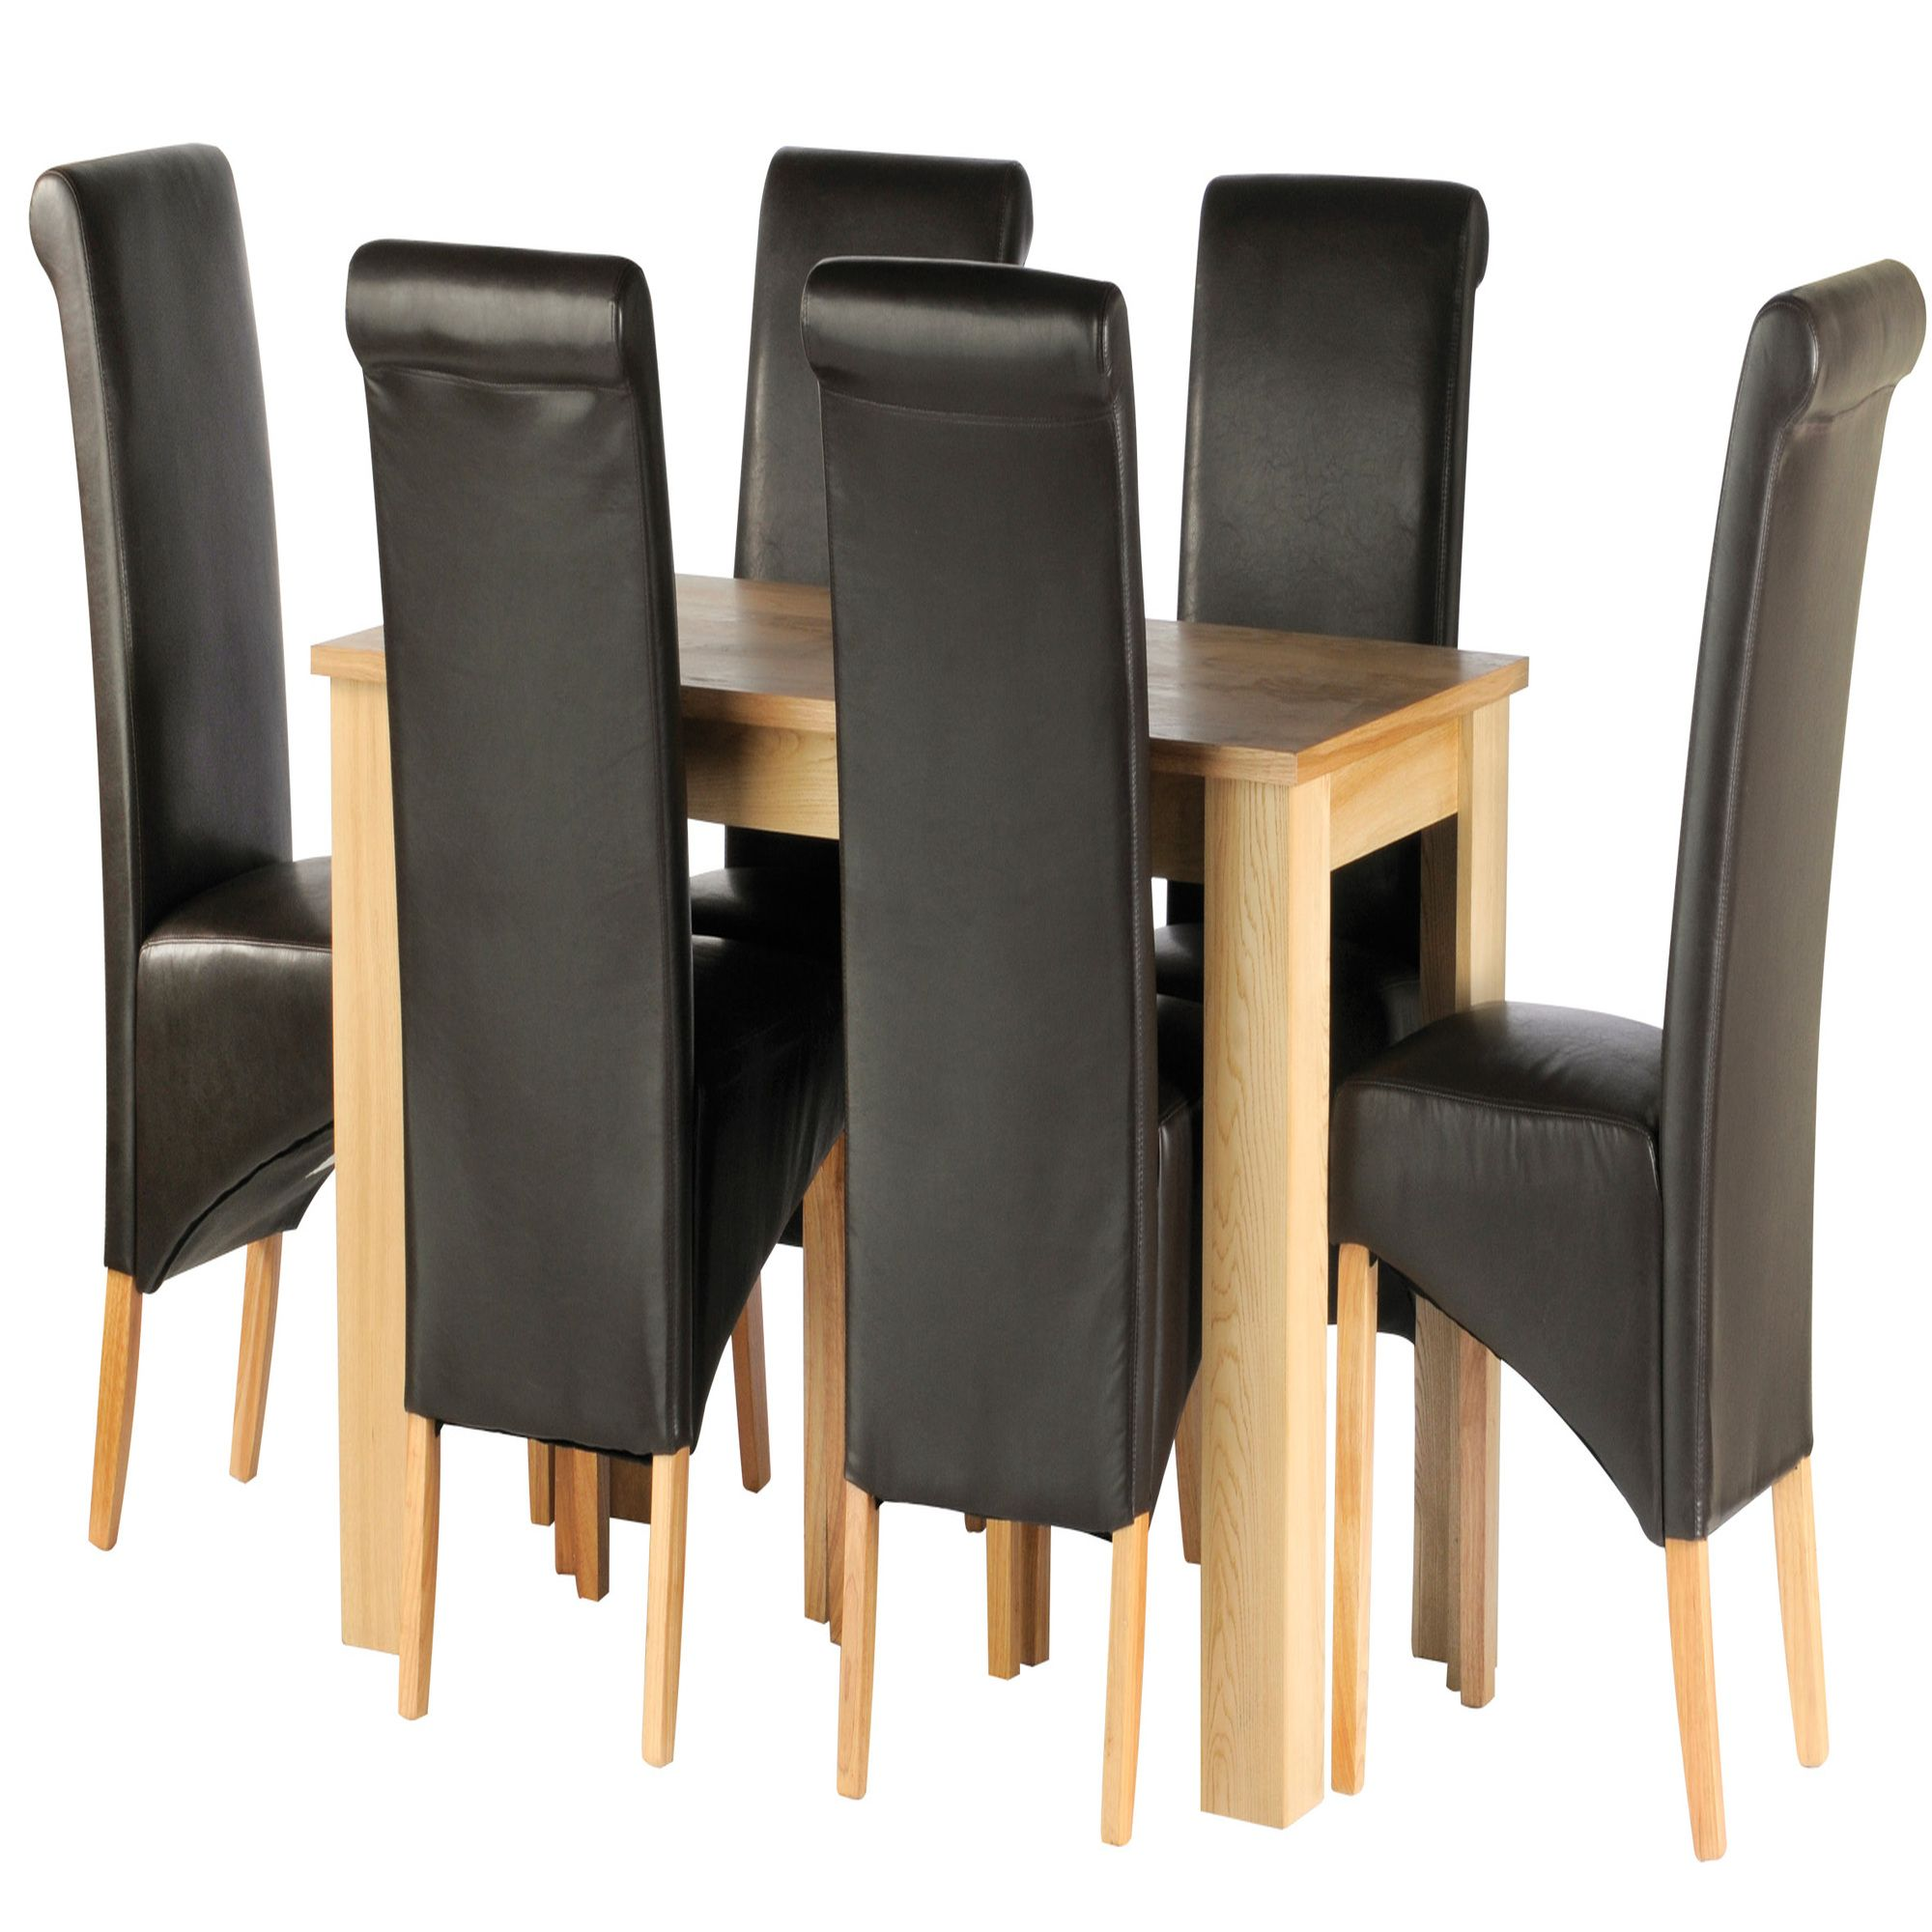 Thorndon Christchurch 7 Piece Dining Set in Natural Light Oak at Tesco Direct